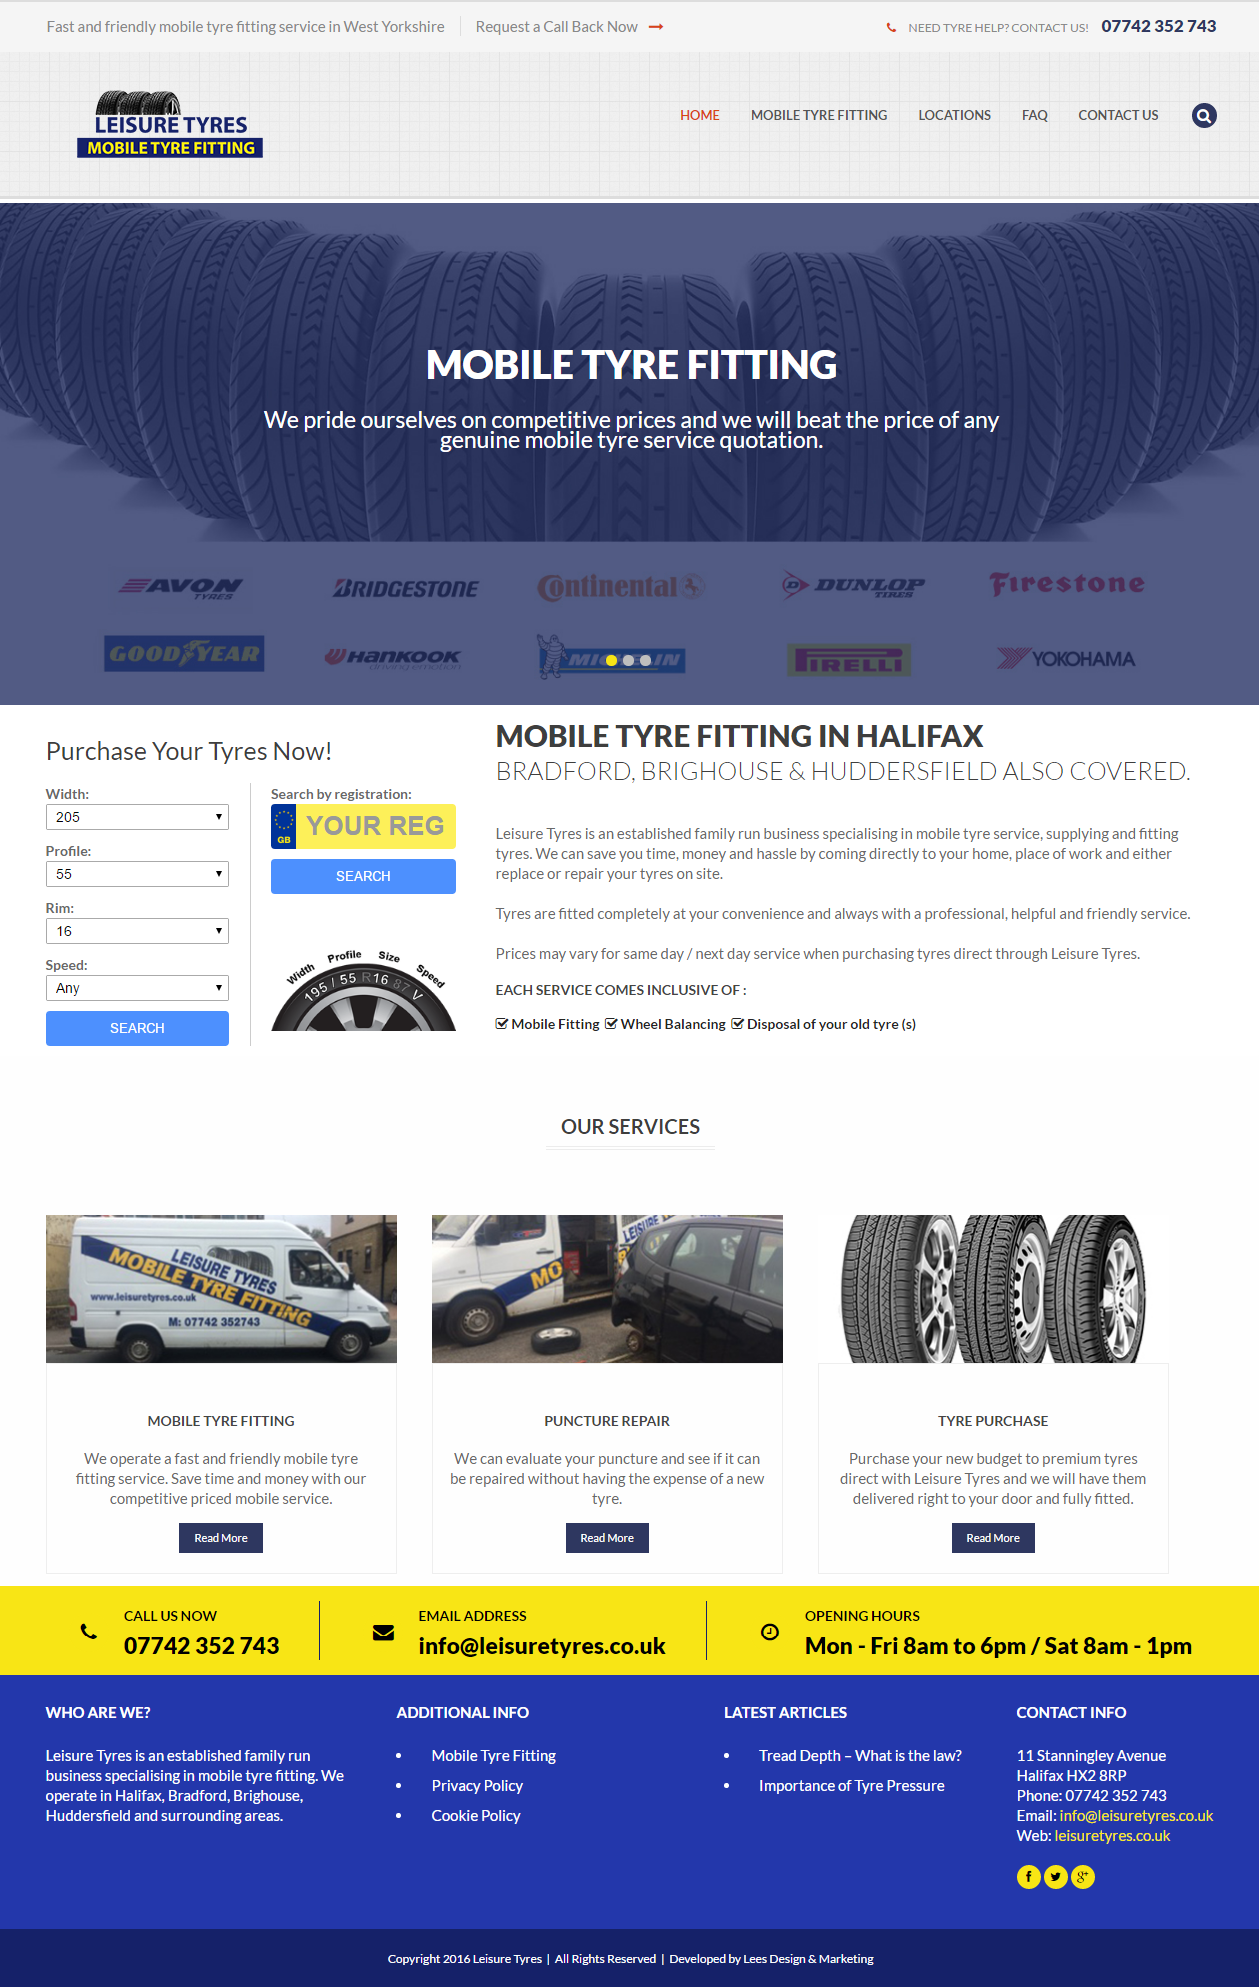 Leisure Tyres Website and SEO